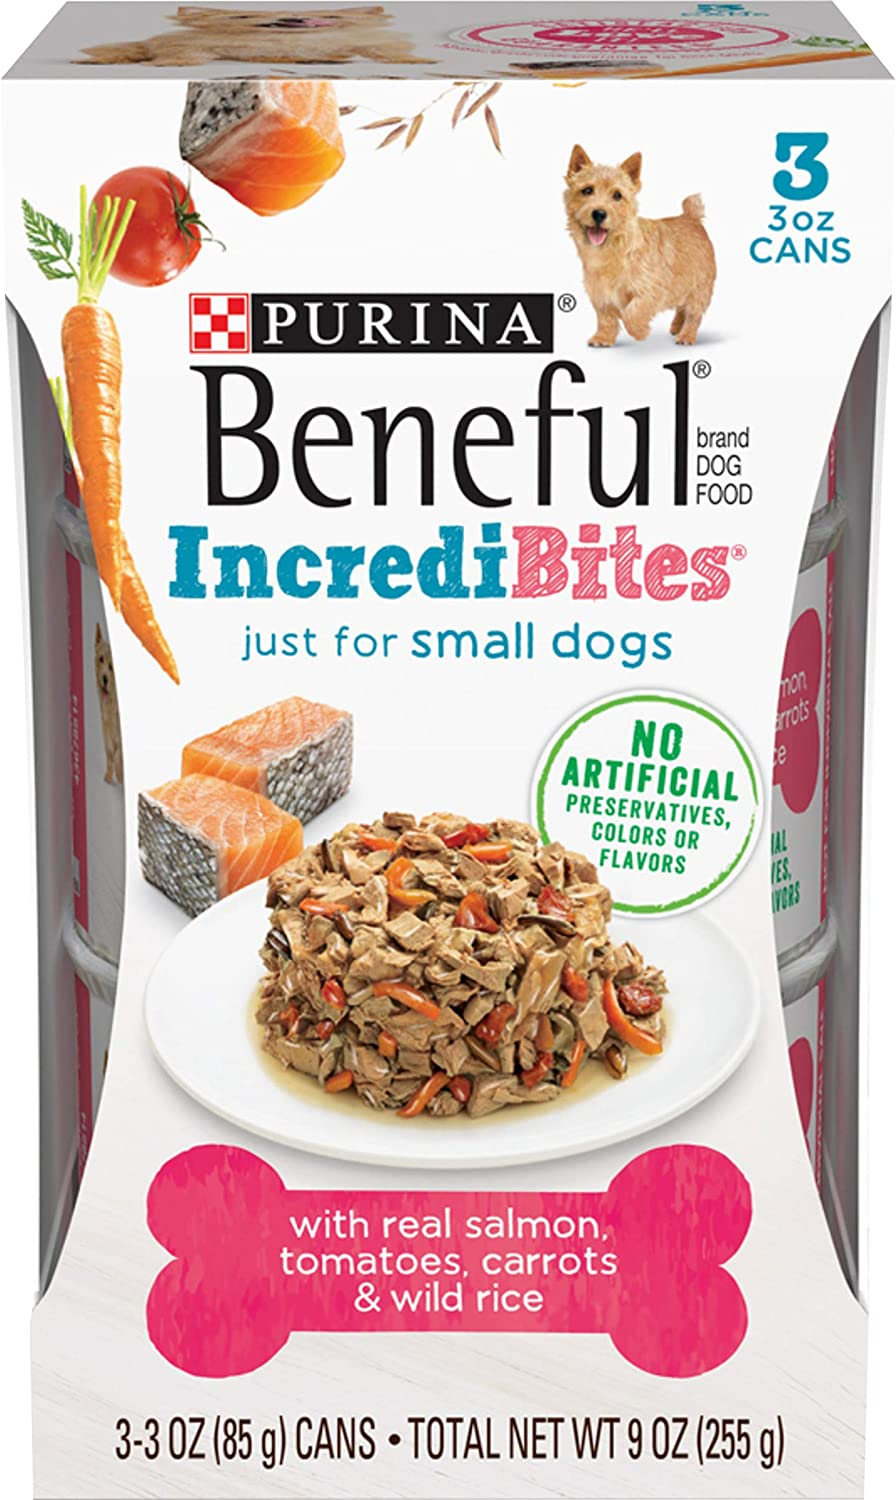 Purina Beneful Small Breed Wet Dog Food, IncrediBites With Salmon - (8 Packs of 3) 3 oz. Cans